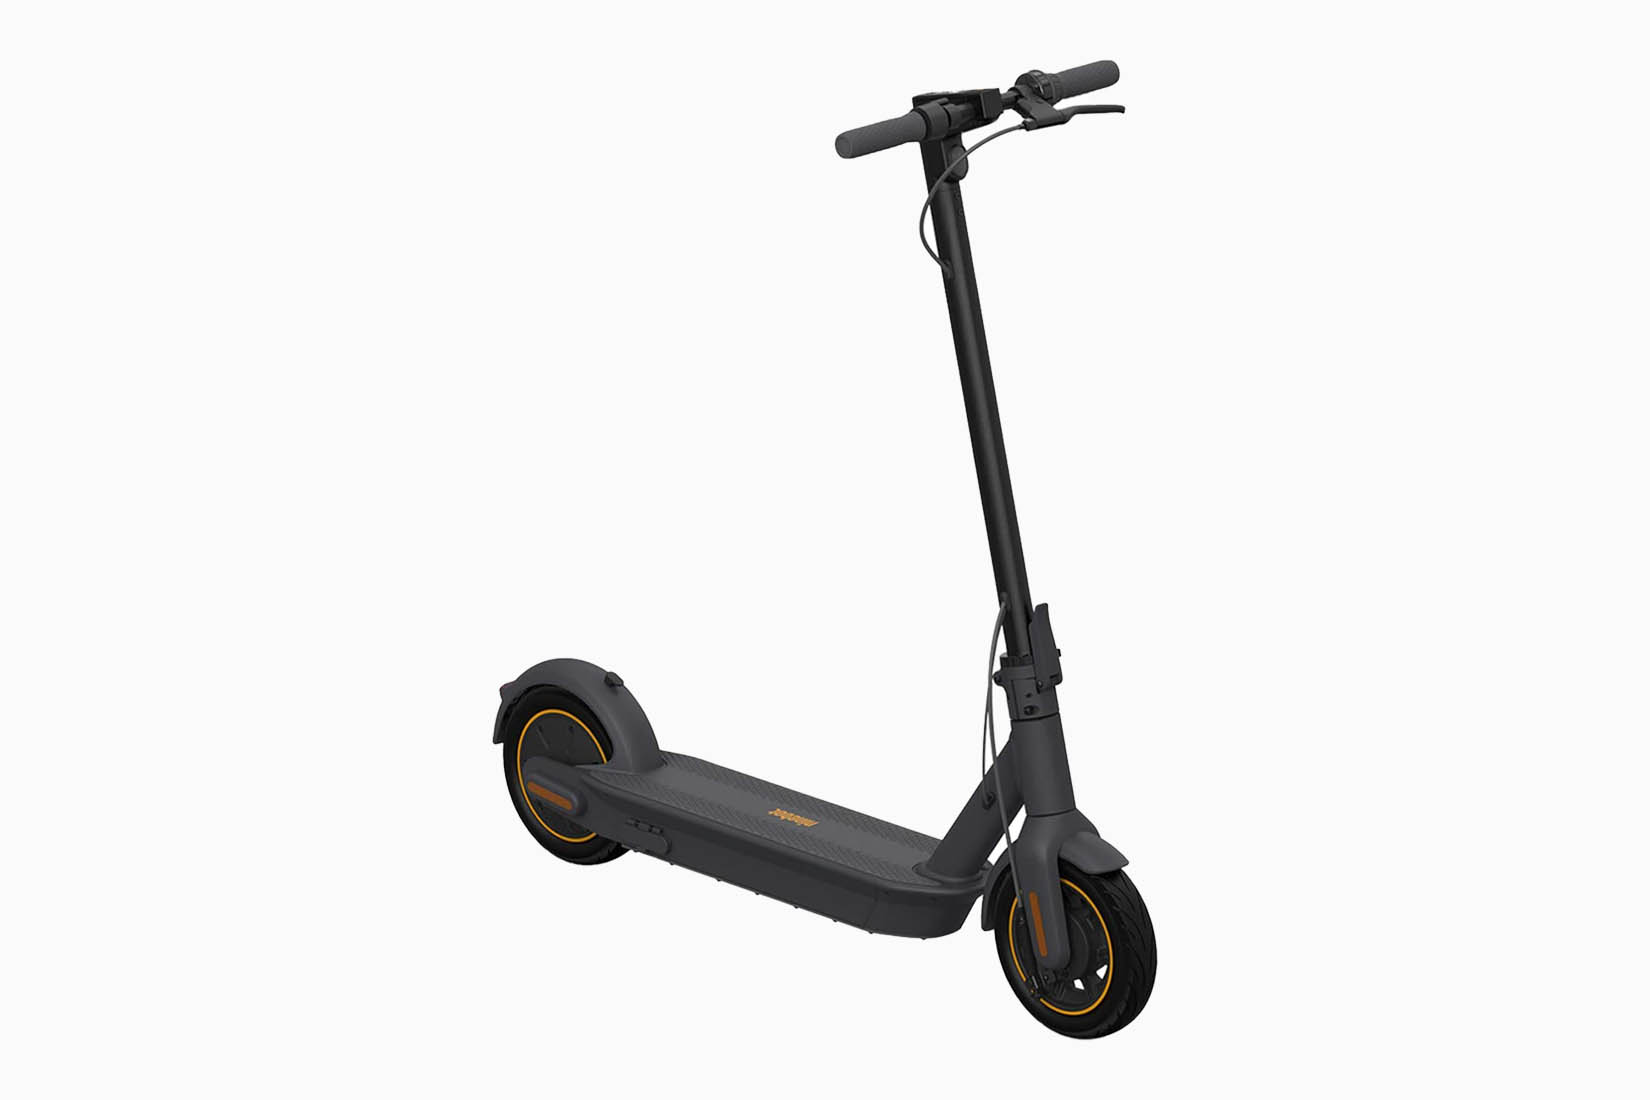 best electric scooter segway ninebot max review - Luxe Digital